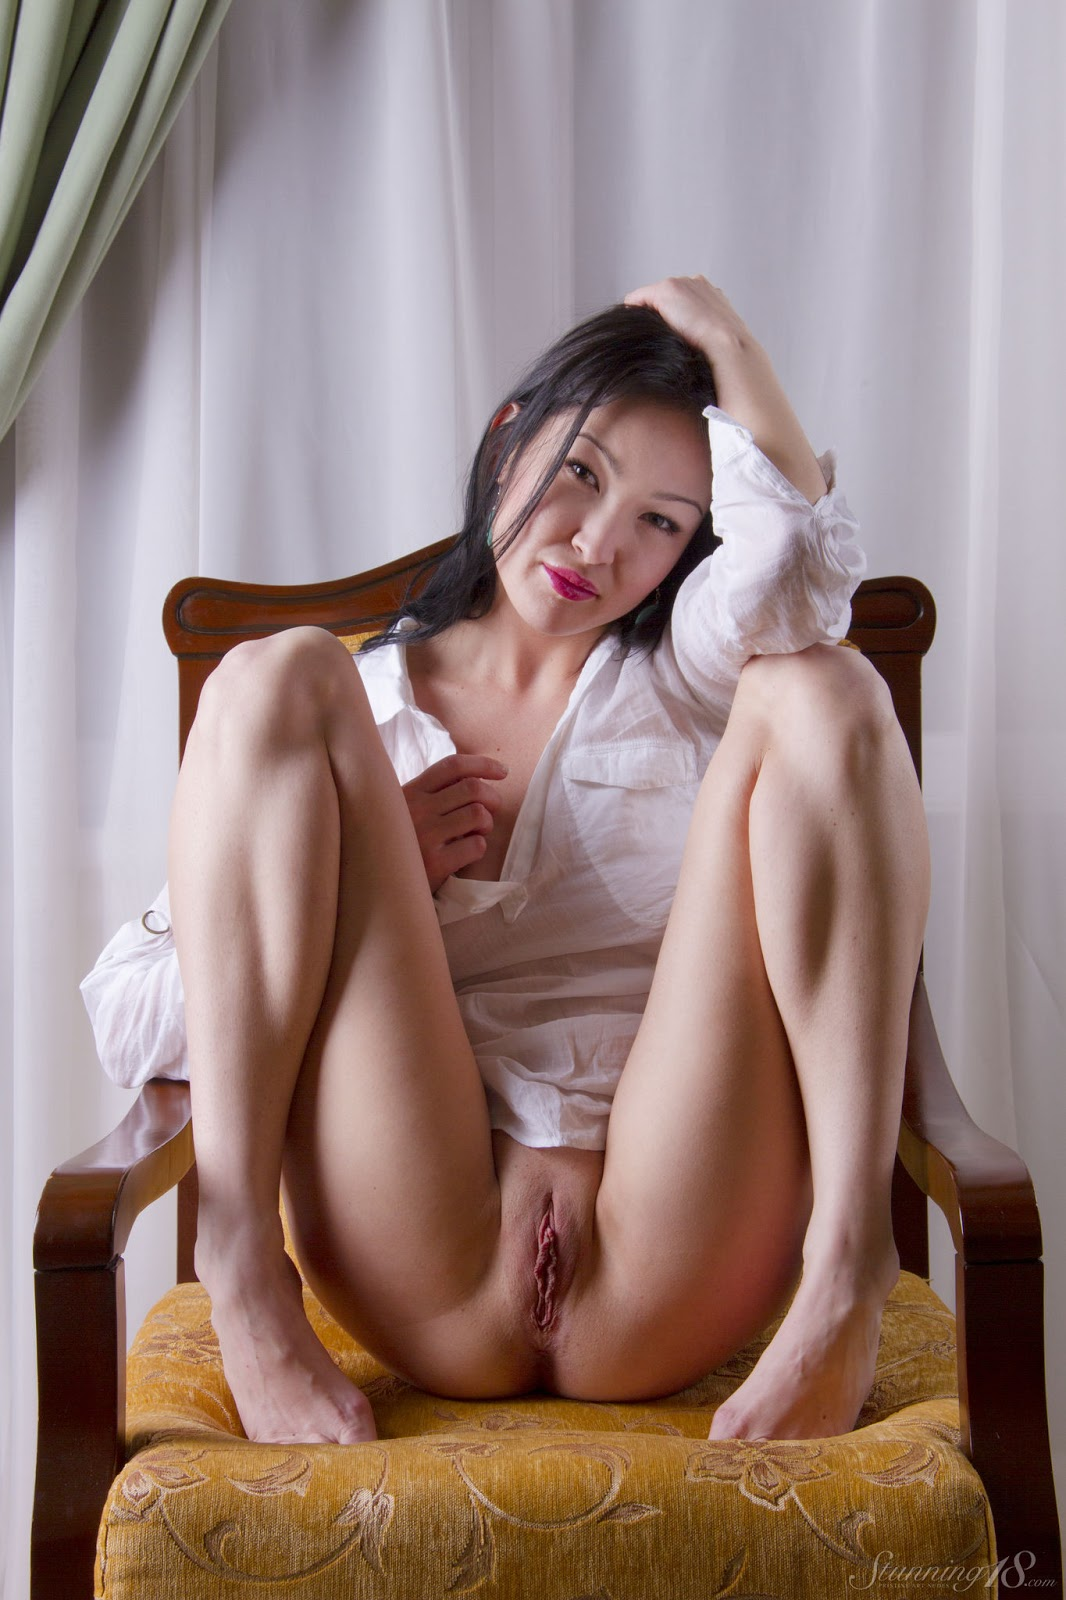 Rusya: Lets PlayAb Exercise for More Powerful Orgasms 8